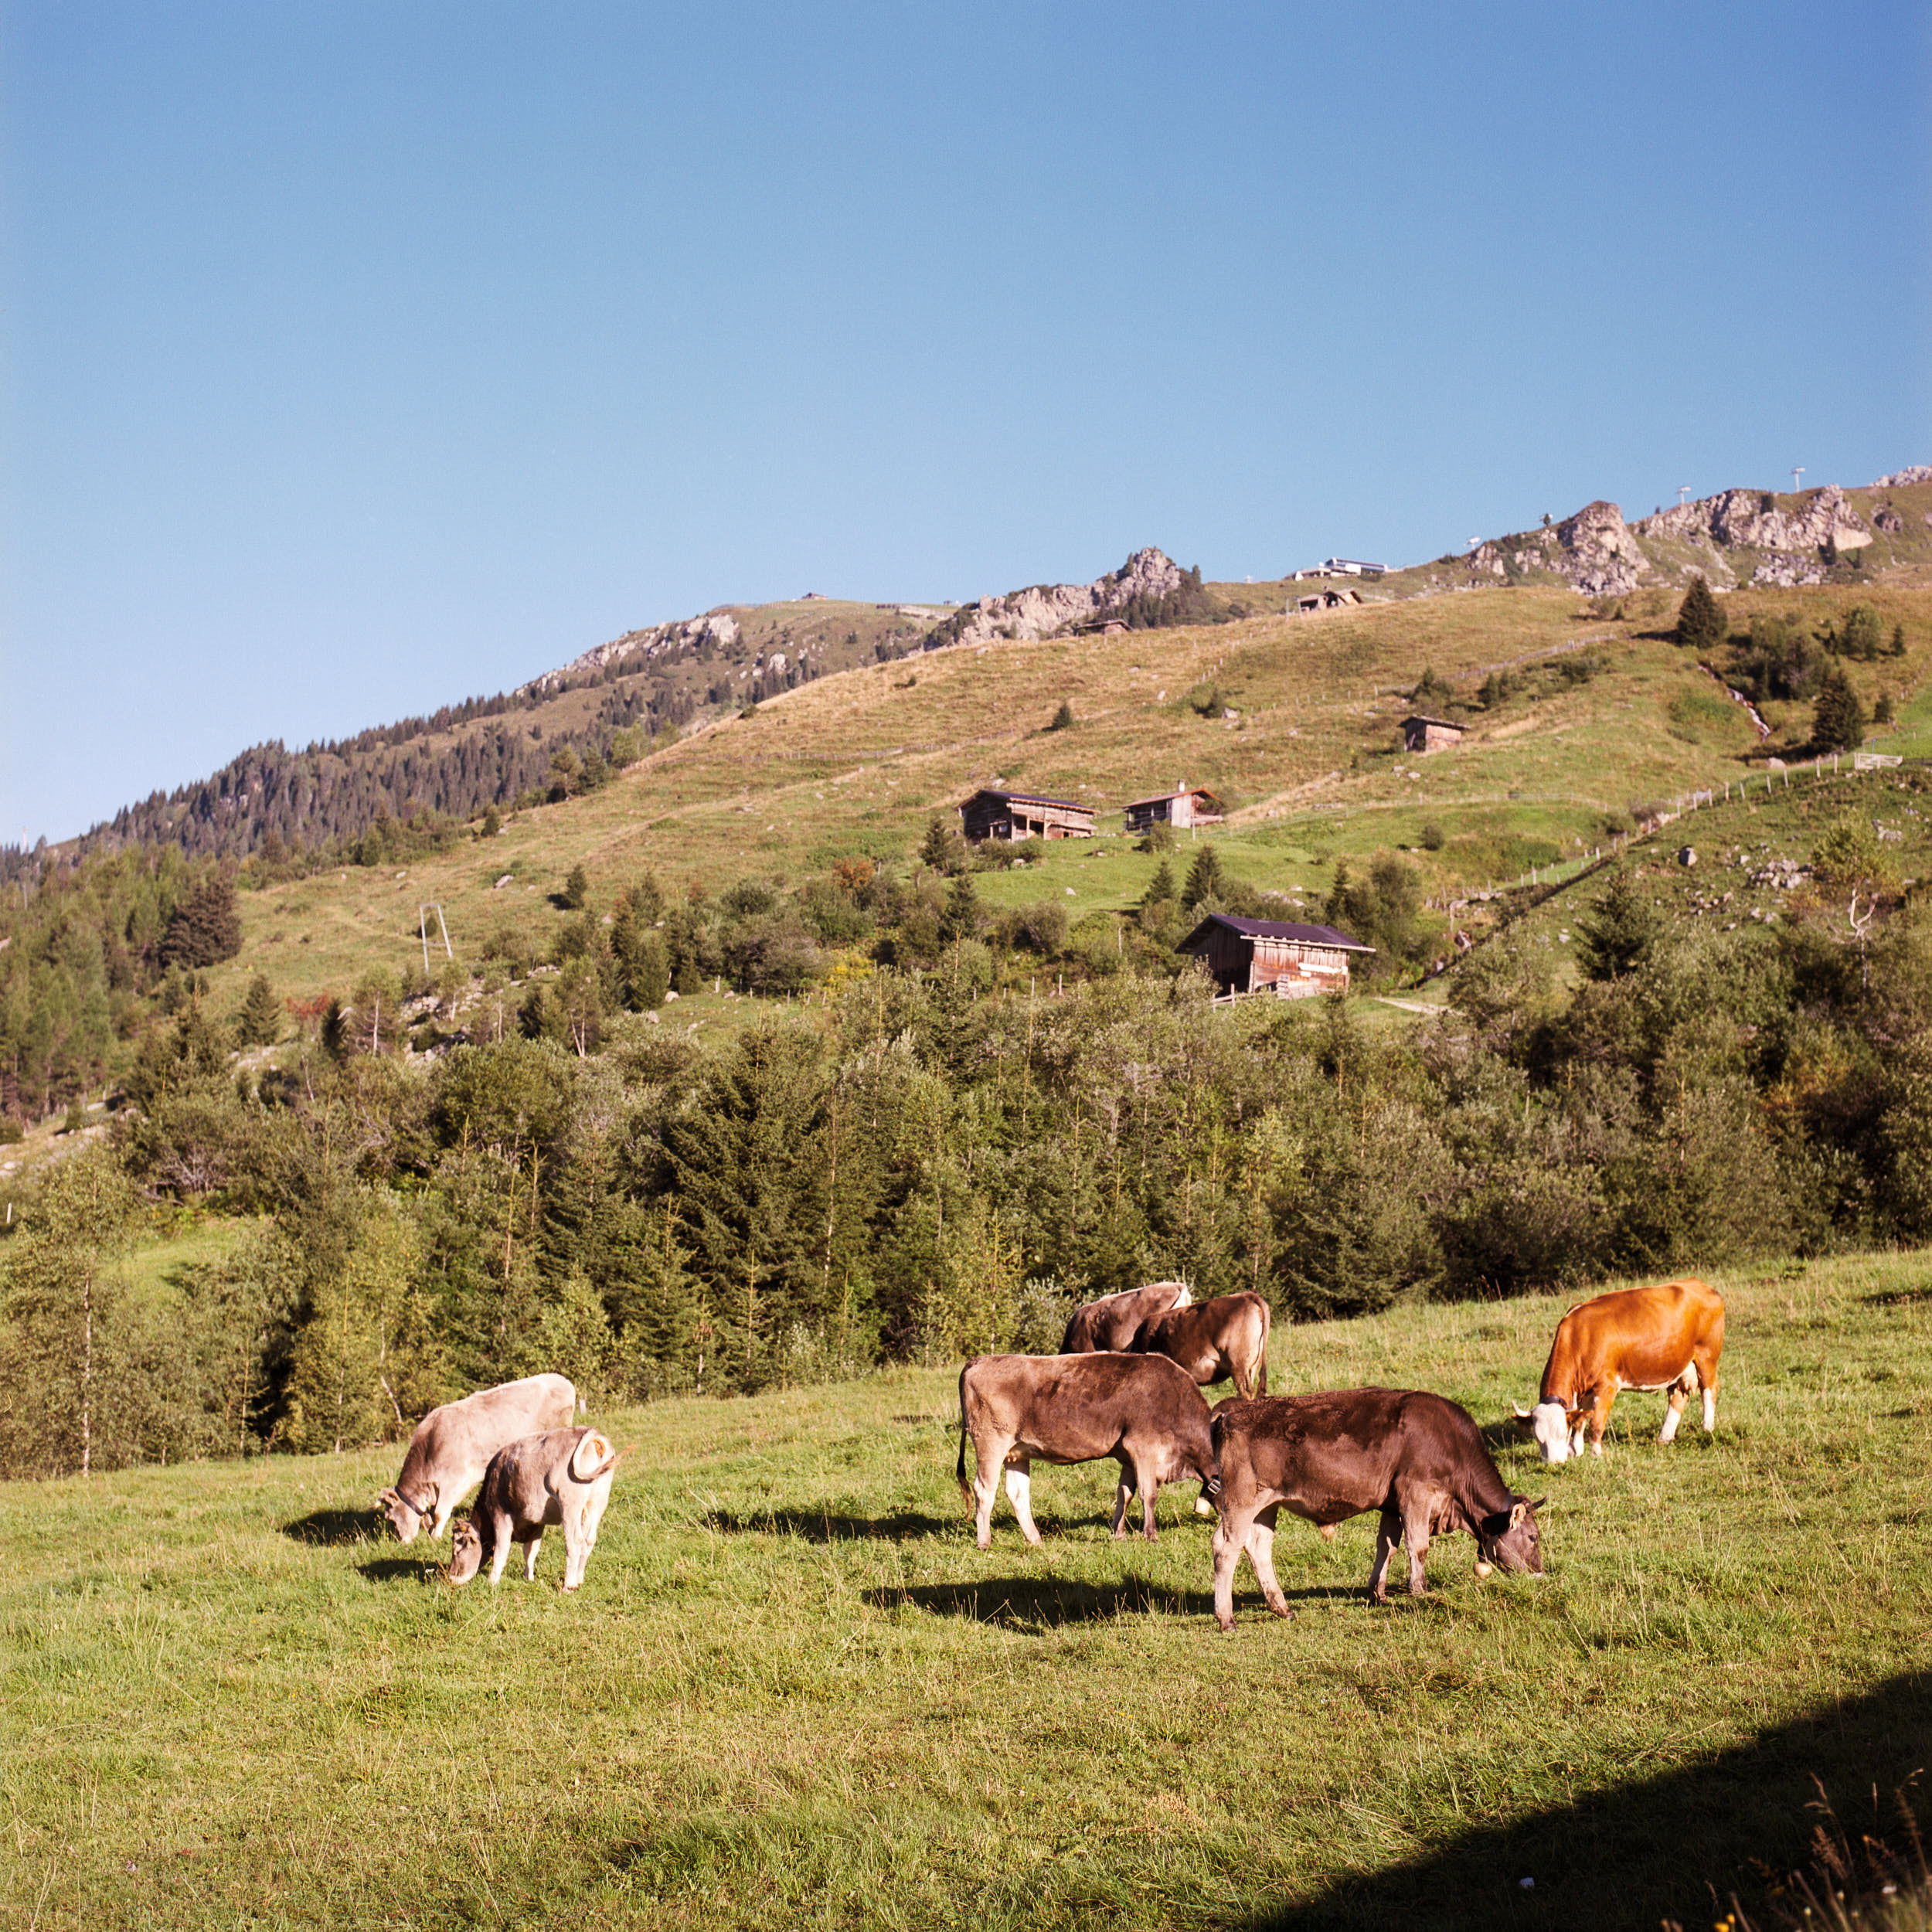 Medium format documentary photography: herd of cows on an alpine meadow.